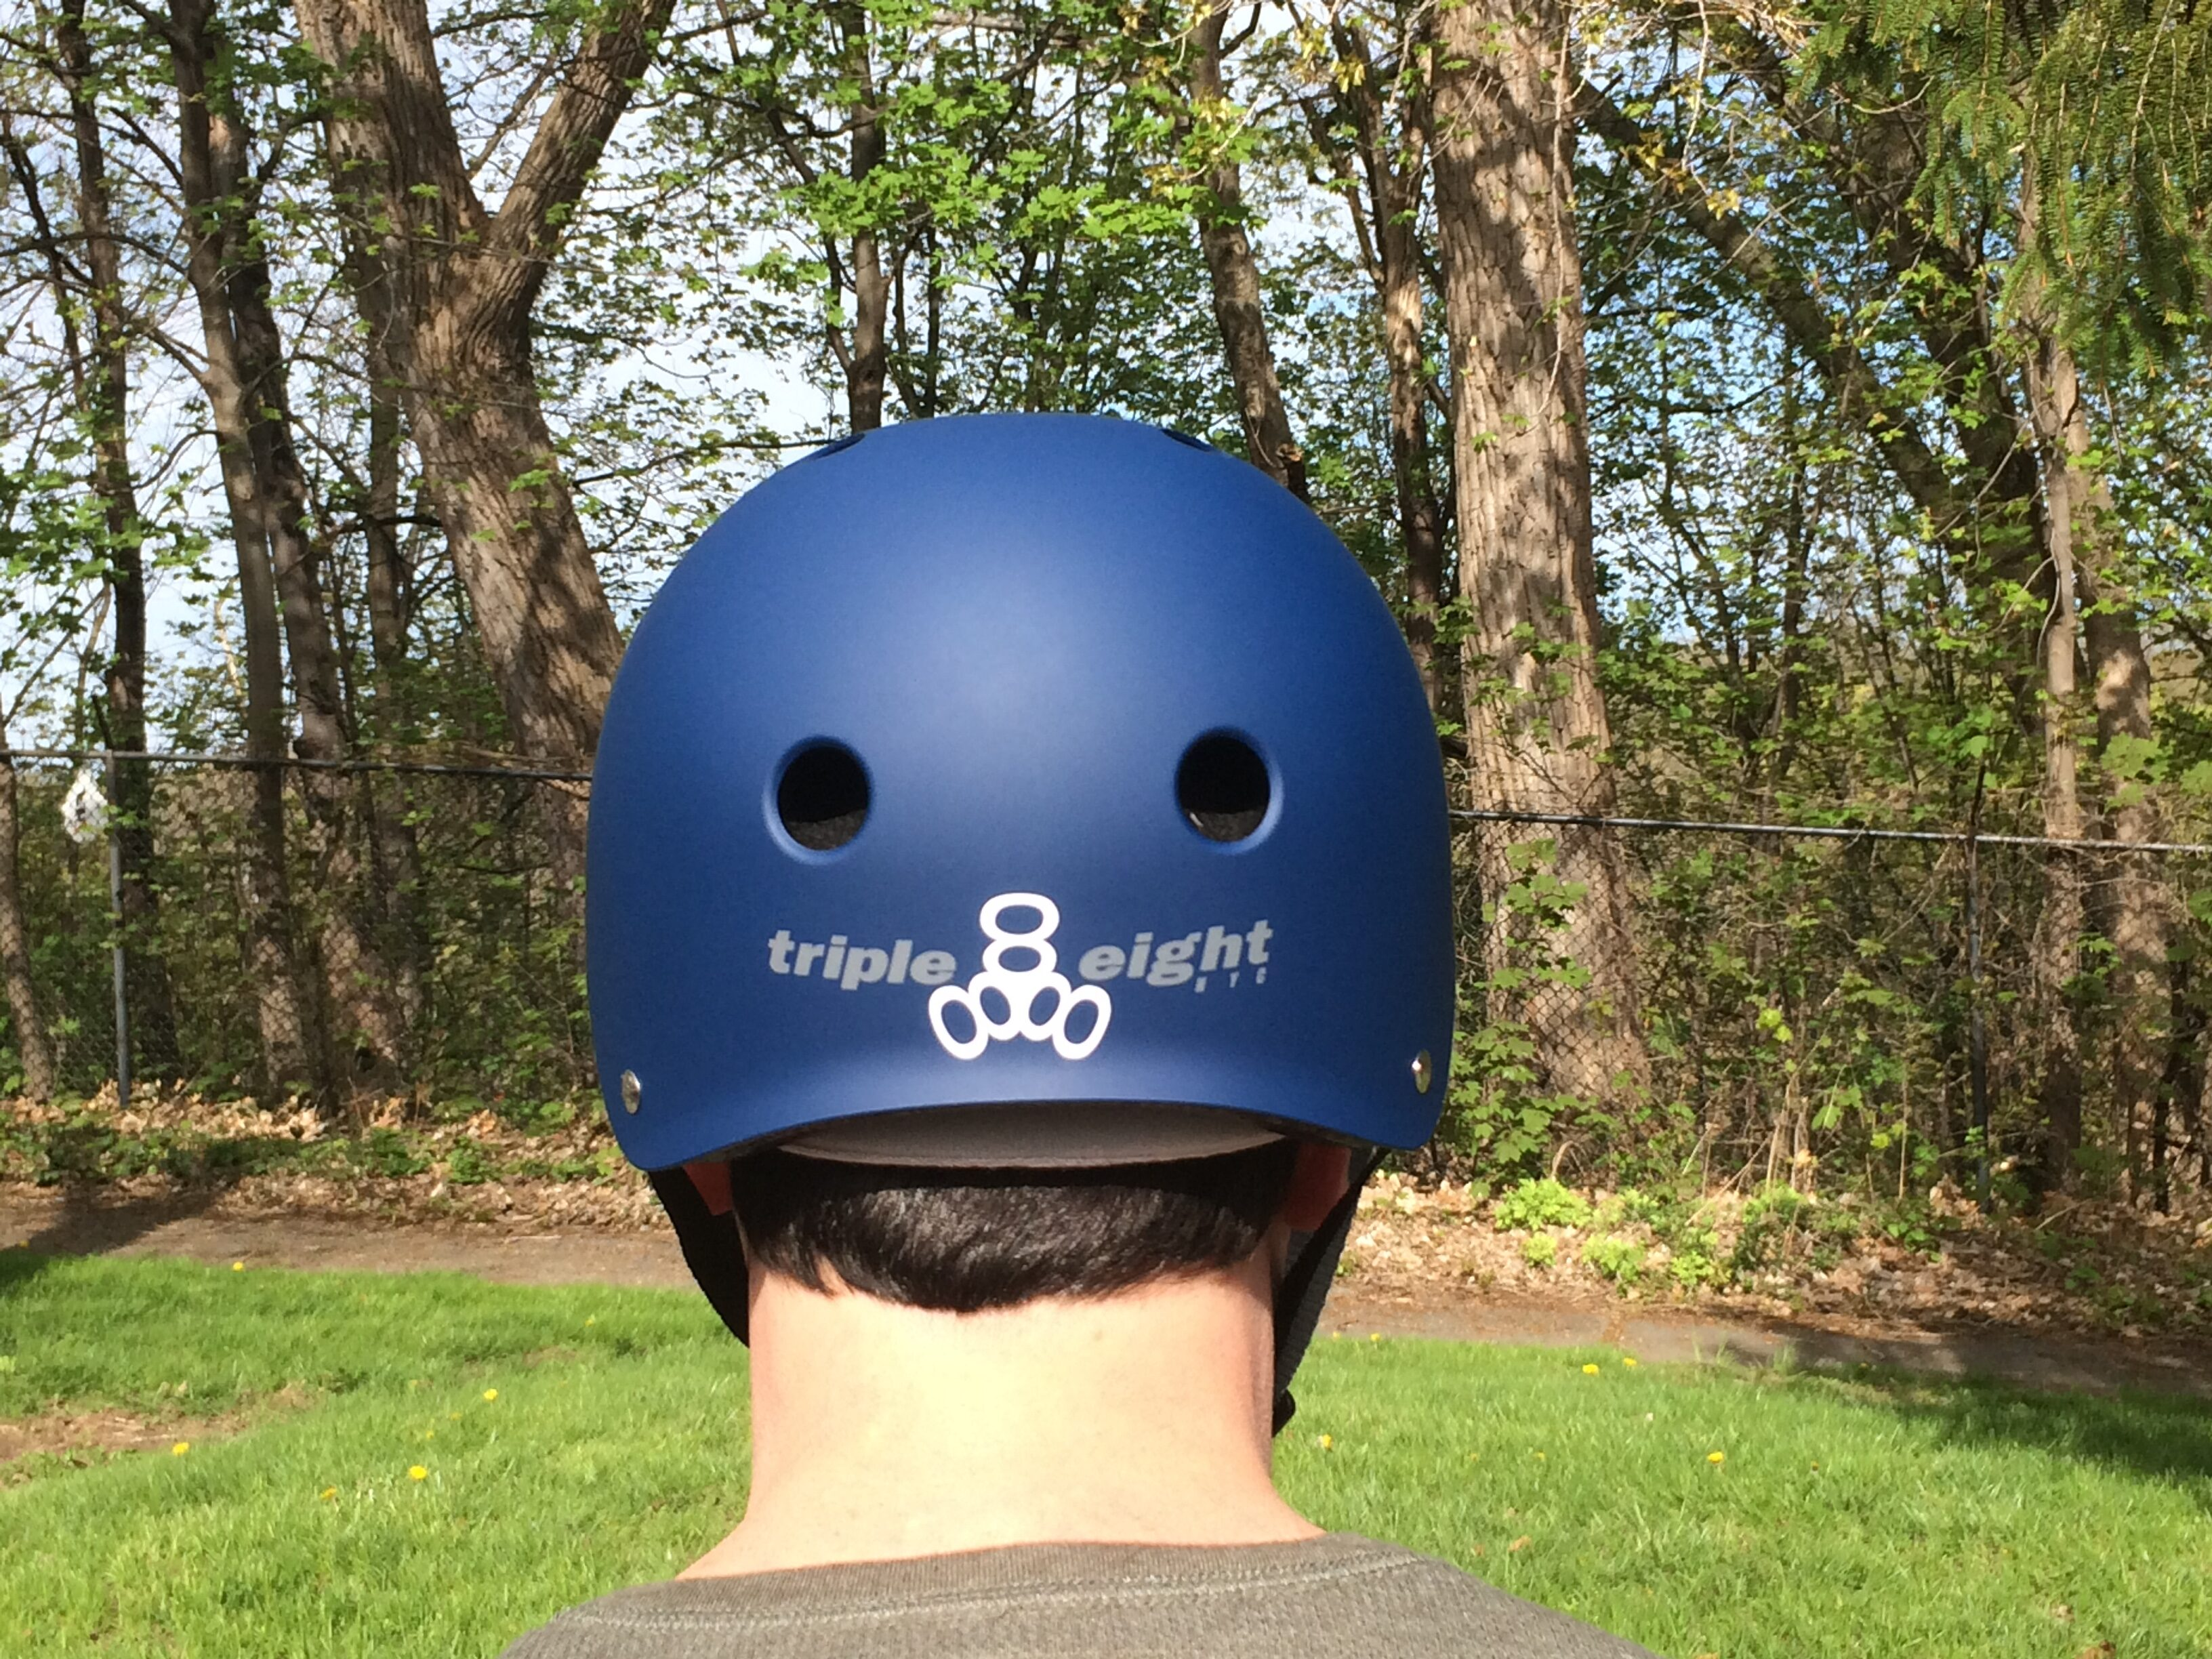 Triple Eight Certified Sweatsaver helmet doesn't dig into the back of my neck, because of the curved lip and lack of an adjustment knob. It also features the name of the helmet with a reflective logo.